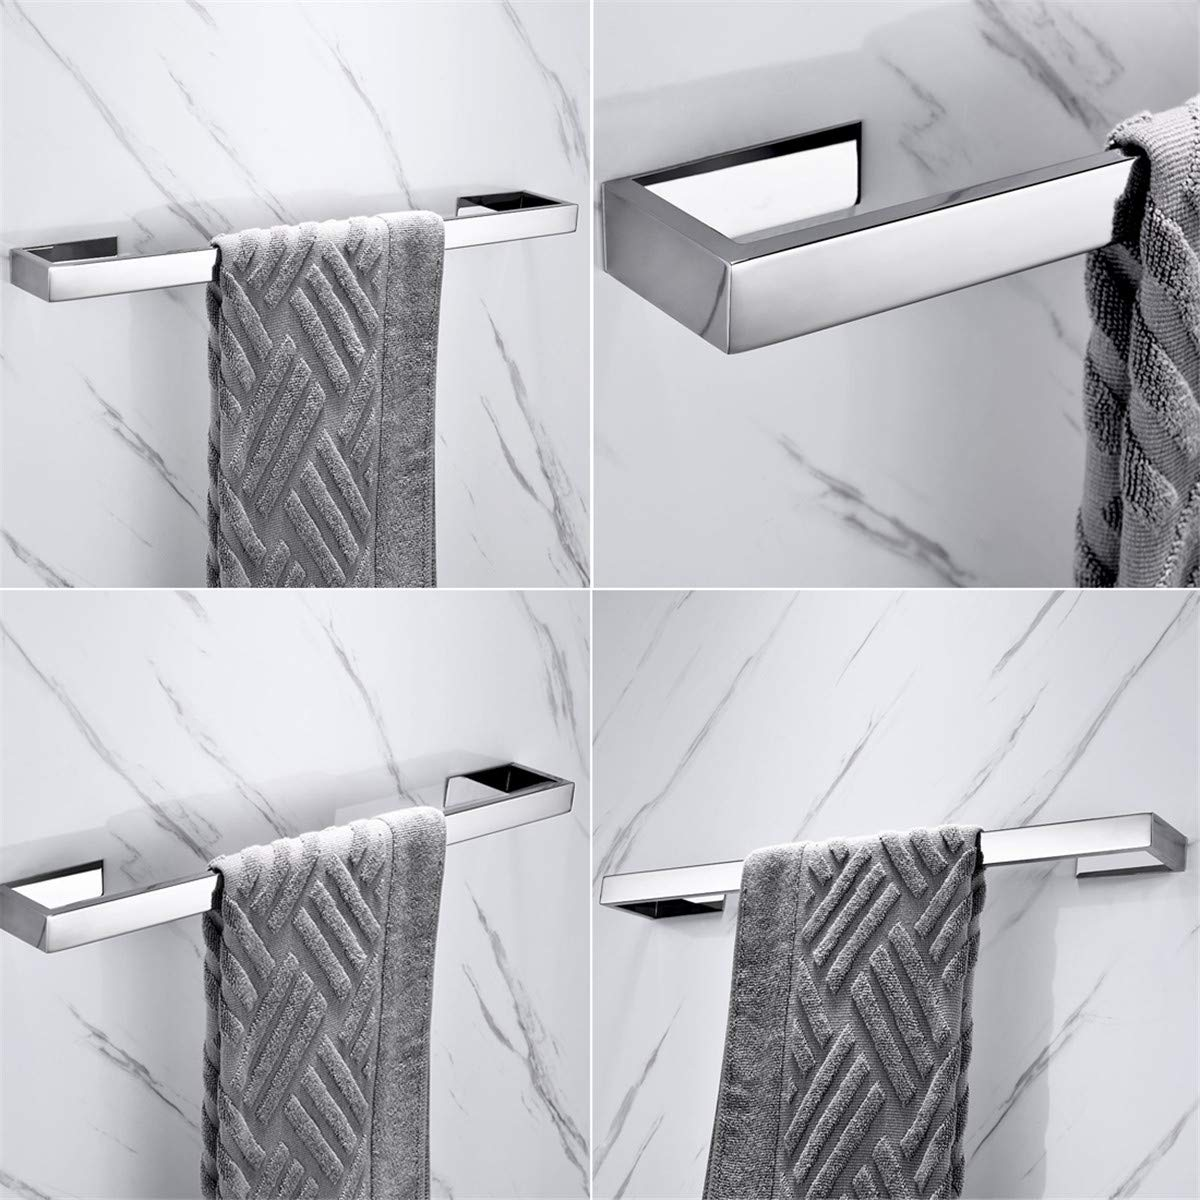 60 cm // 24 inches No Drilling Flybath Towel Rail Bar Single Layer SUS 304 Stainless Steel Stylish Towel Holder Wall Mounted 3M Self Adhesive Mirror Polished